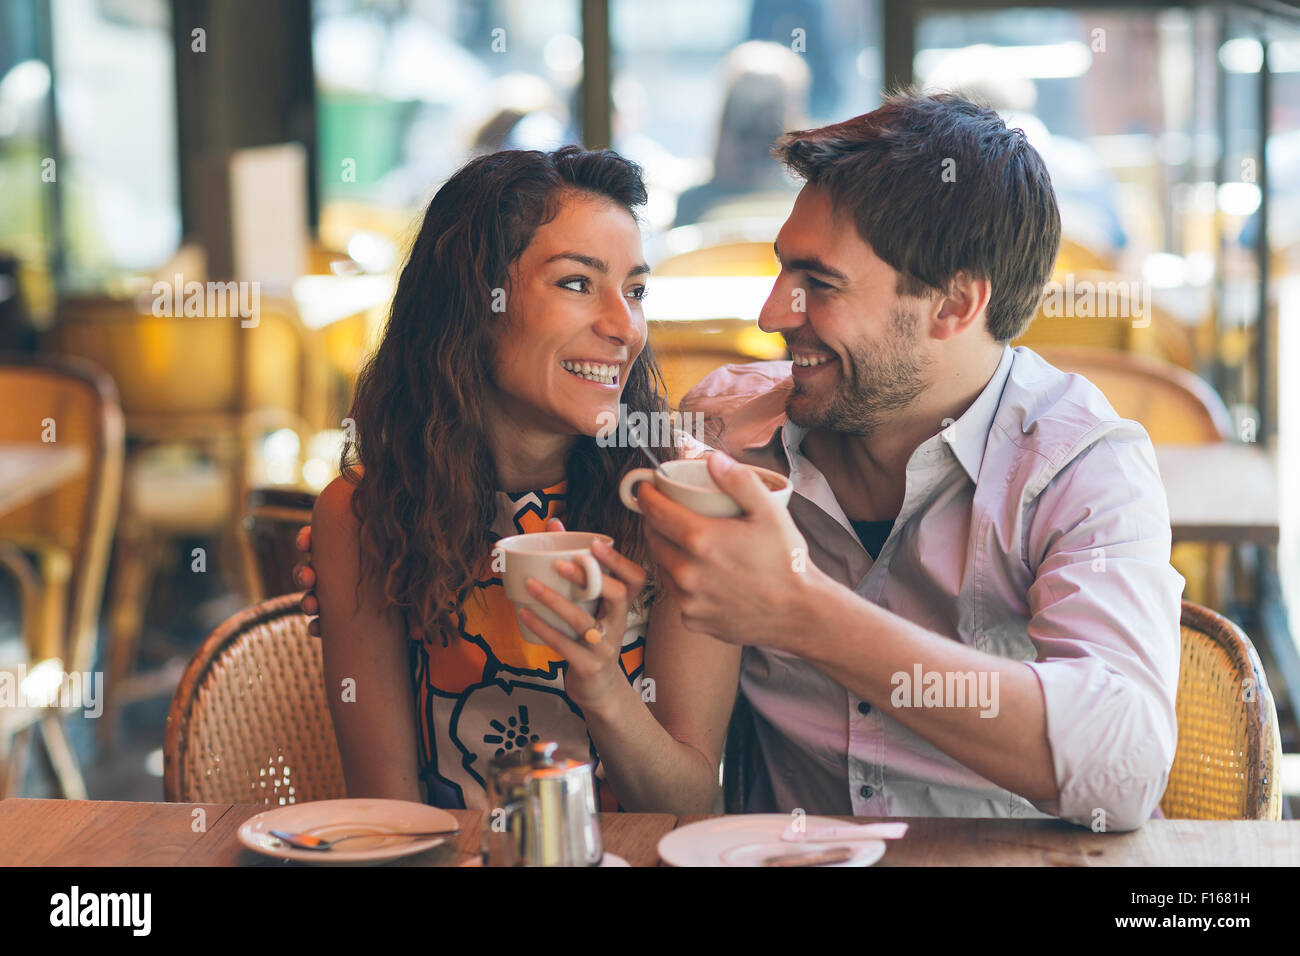 Couple in cafe, Paris Photo Stock